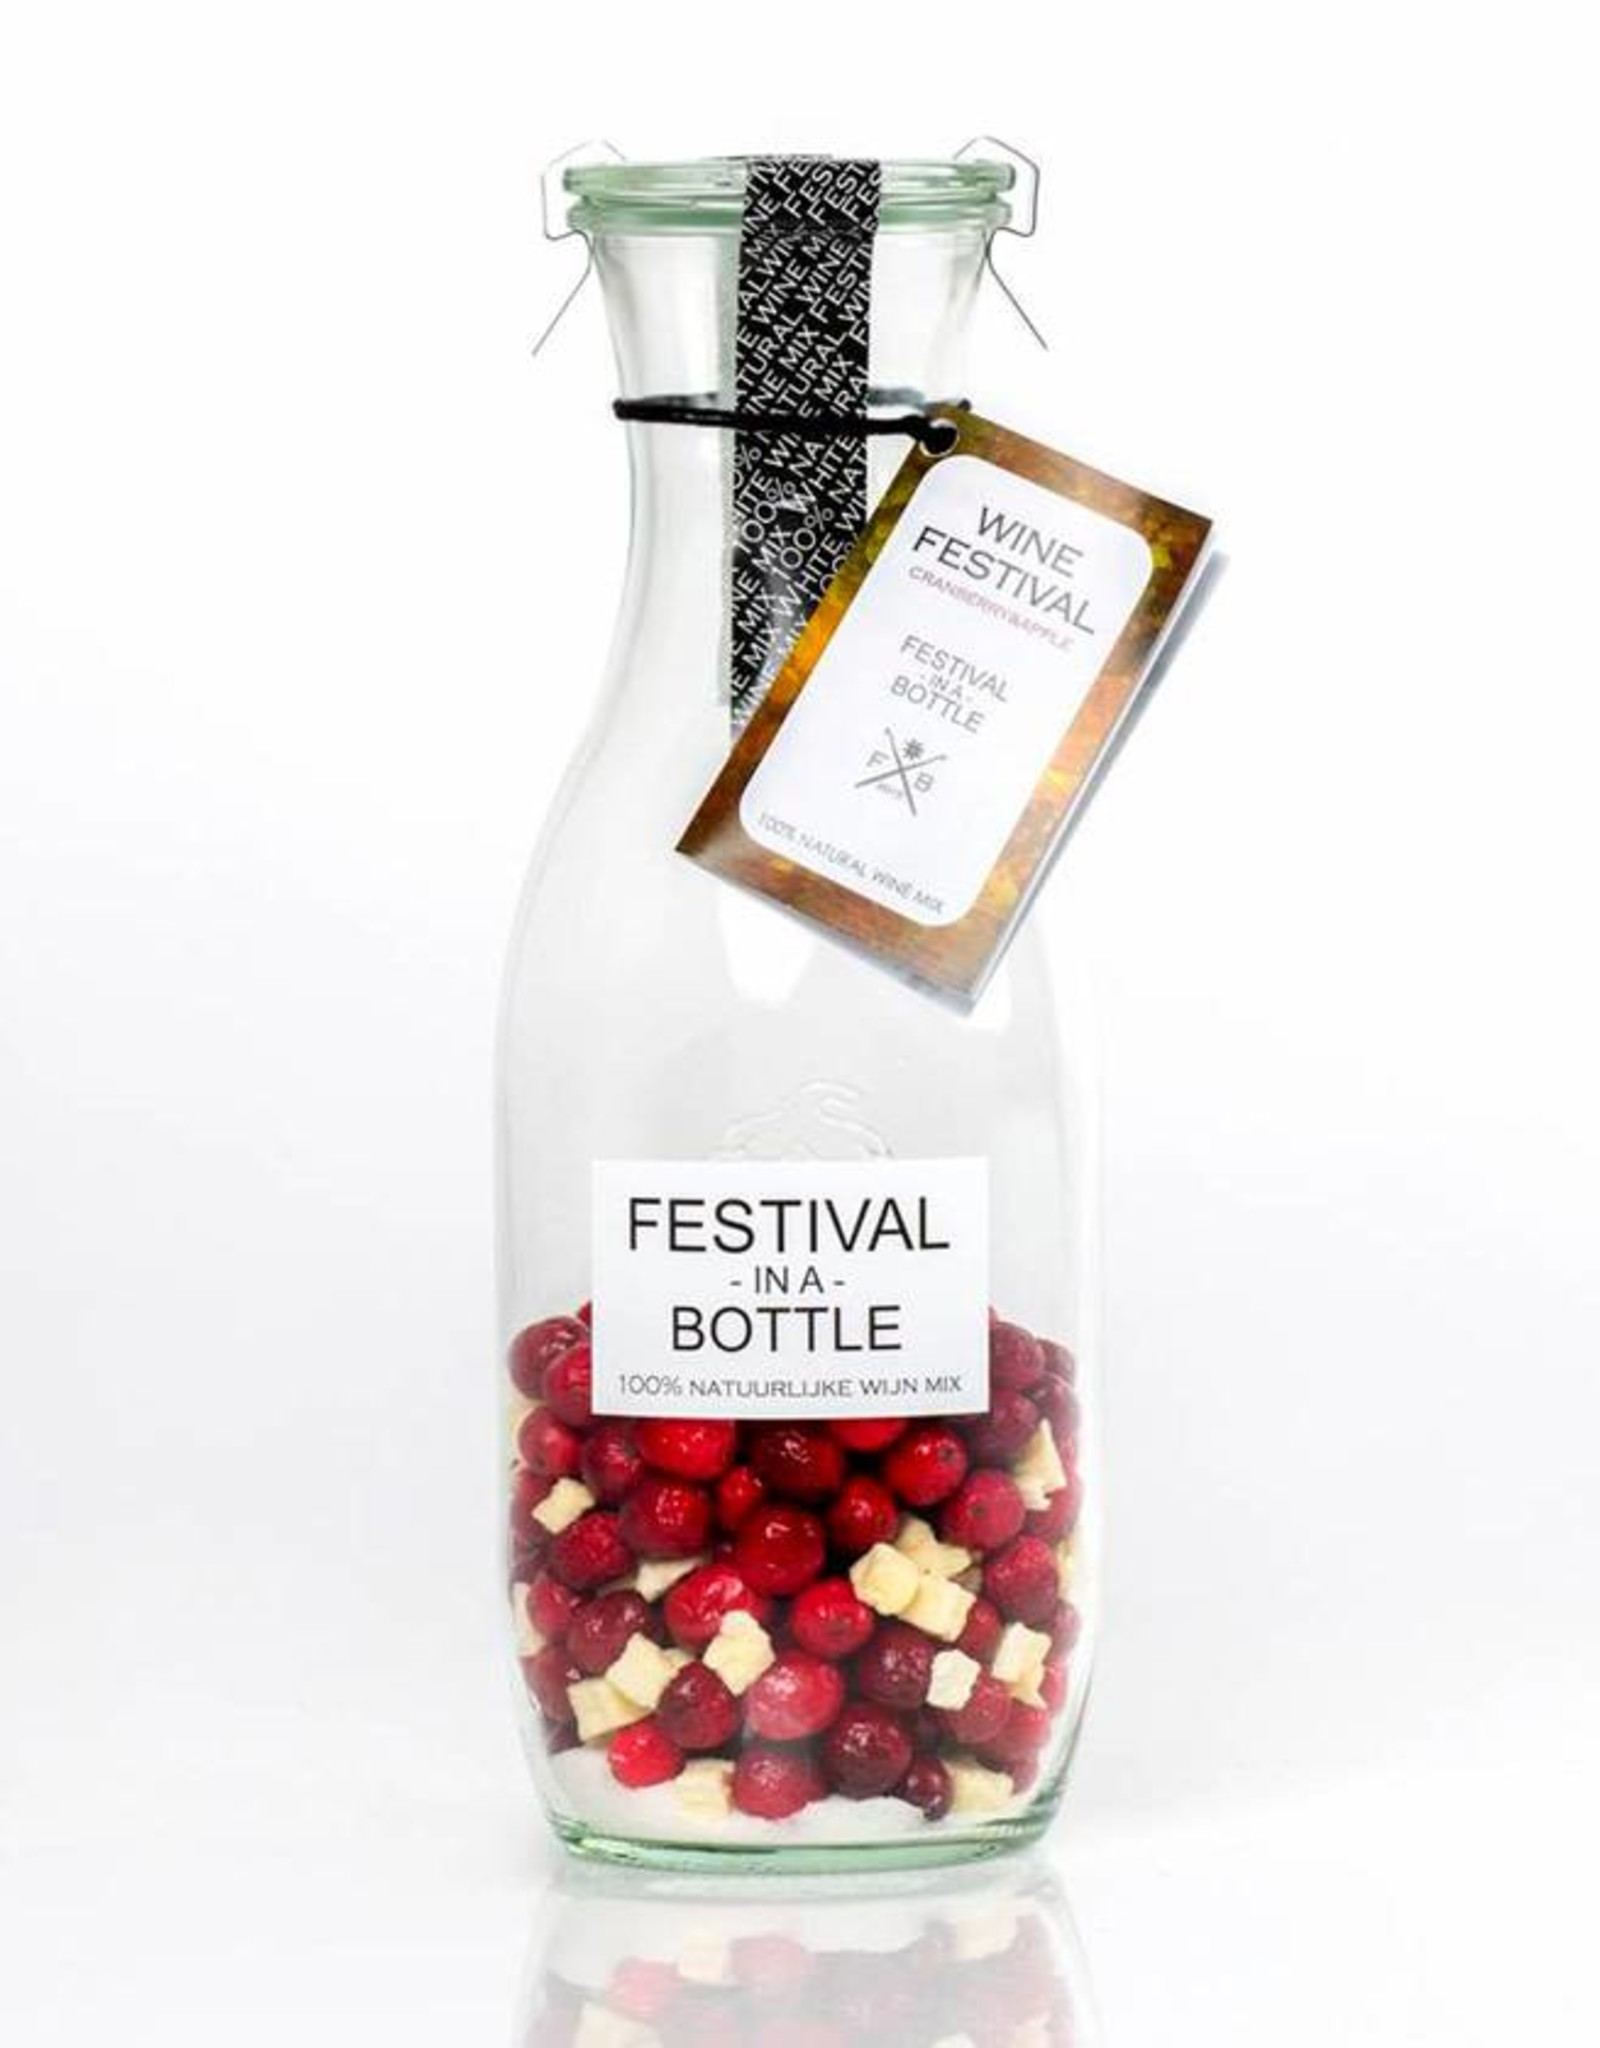 Festival in a Bottle Wine Festival Cranberry & Apple-Fles 750ML